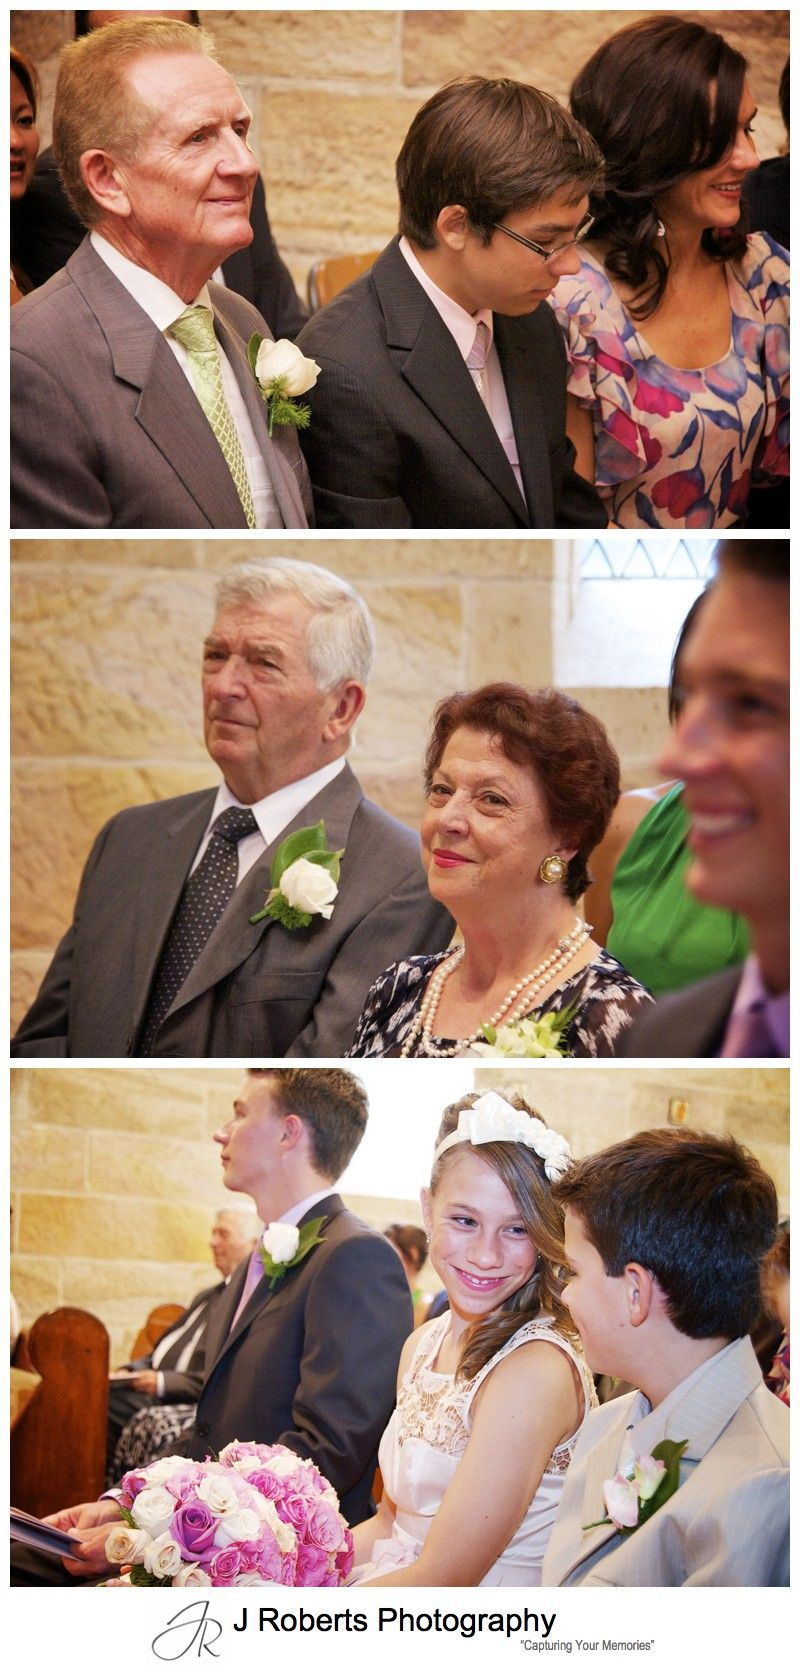 Family looking on as couple marry - wedding photography sydney